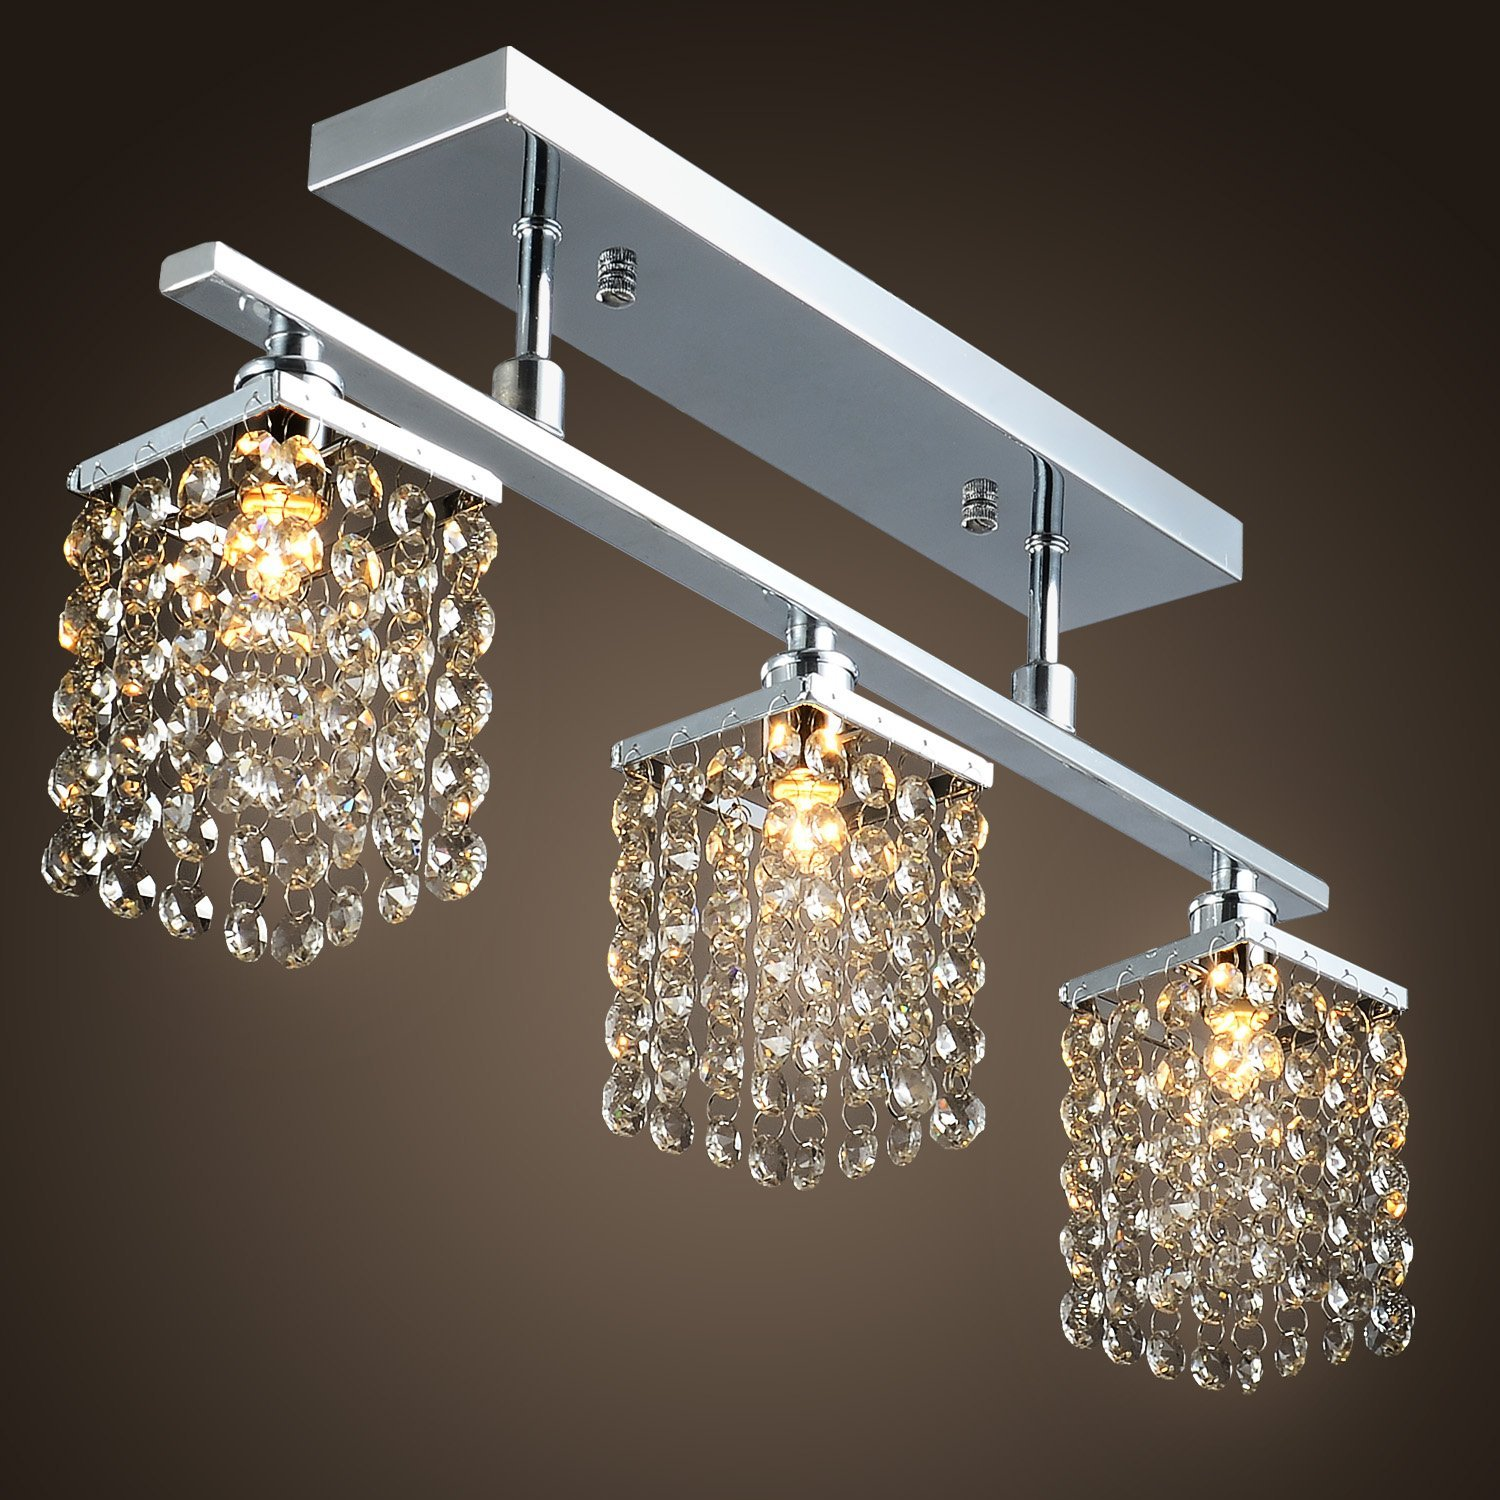 Online buy wholesale chandelier linear lights pendant from china 3 light hanging crystal linear chandelier with fixture modern flush mount ceiling light fixture for arubaitofo Image collections